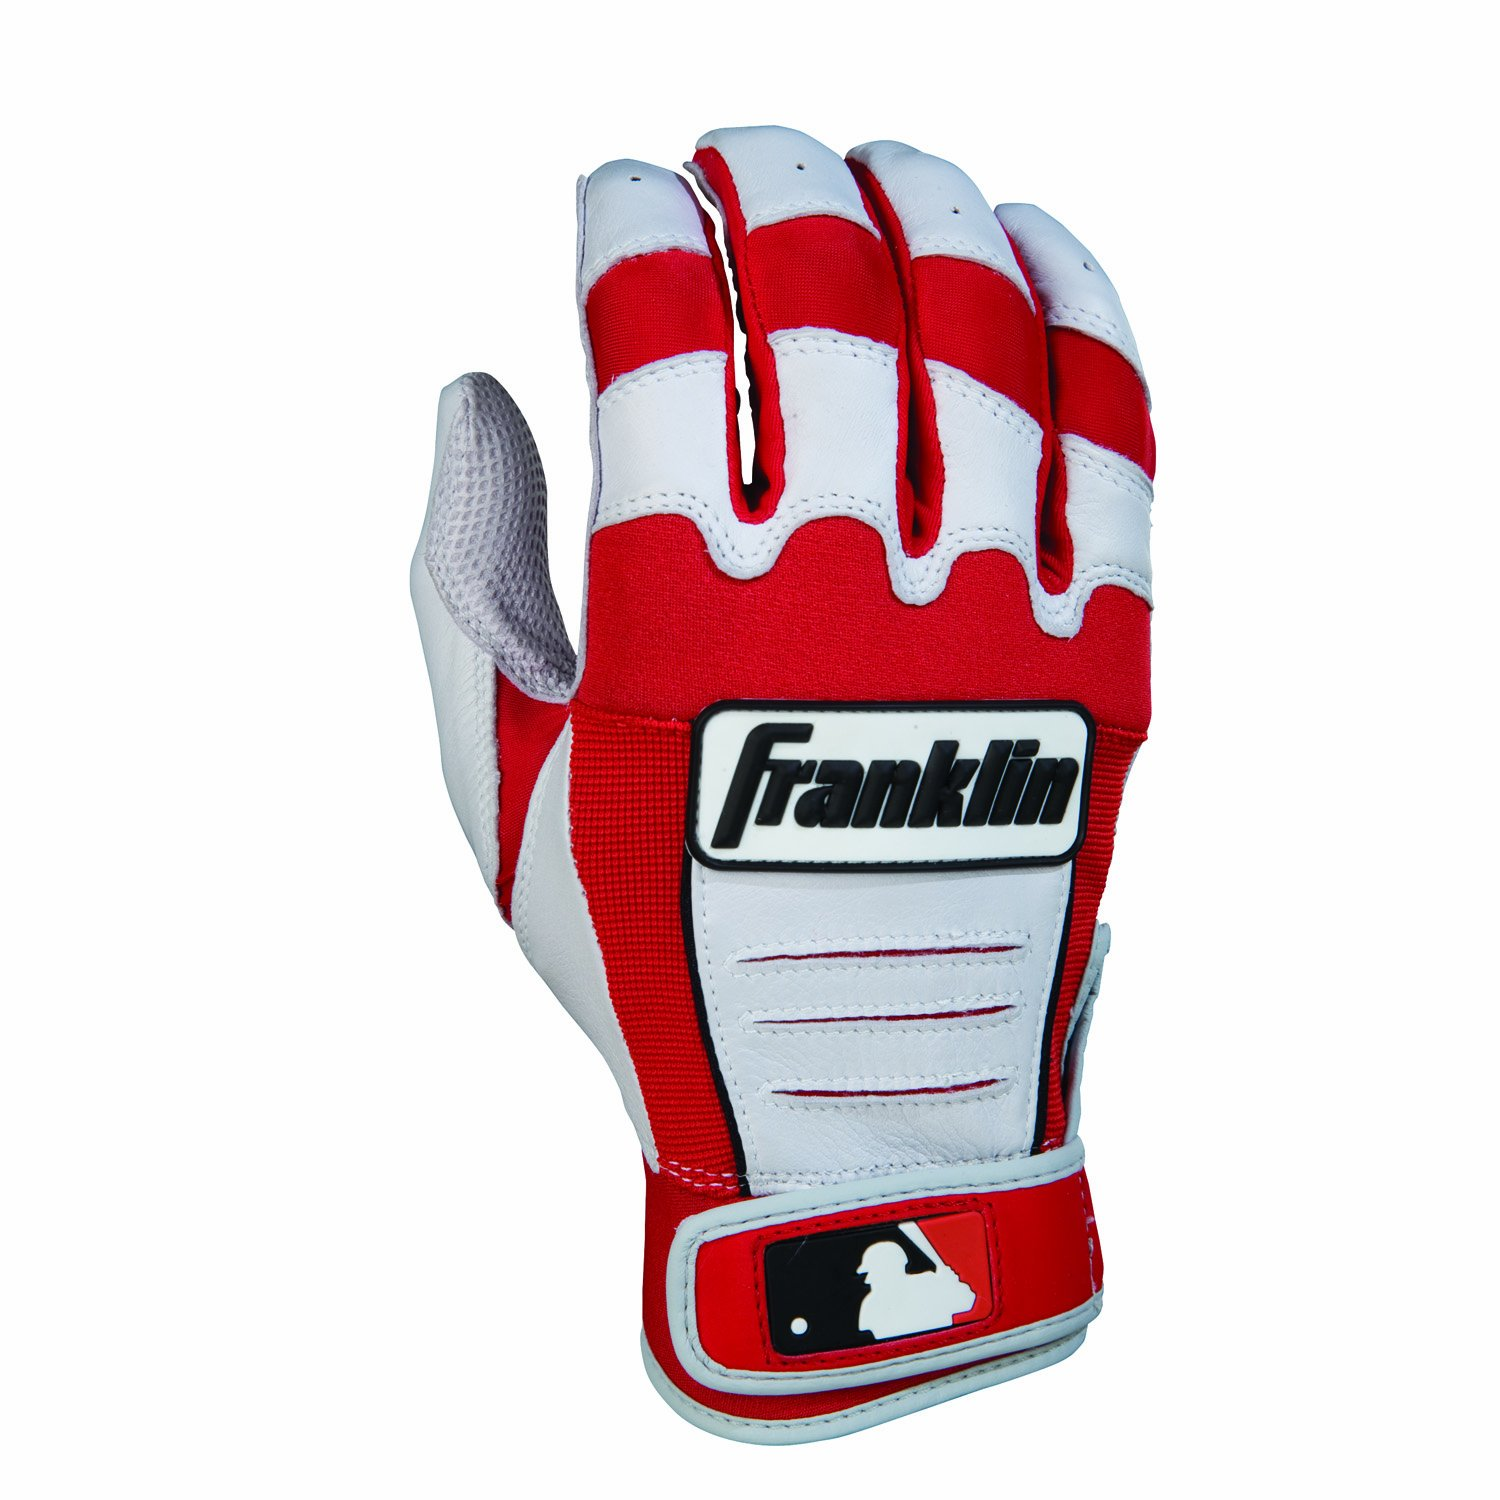 Franklin (フランクリン) スポーツ MLB CFX Pro バッティング グロ―ブ B006DOIOBO Adult Large|Red/Pearl Red/Pearl Adult Large